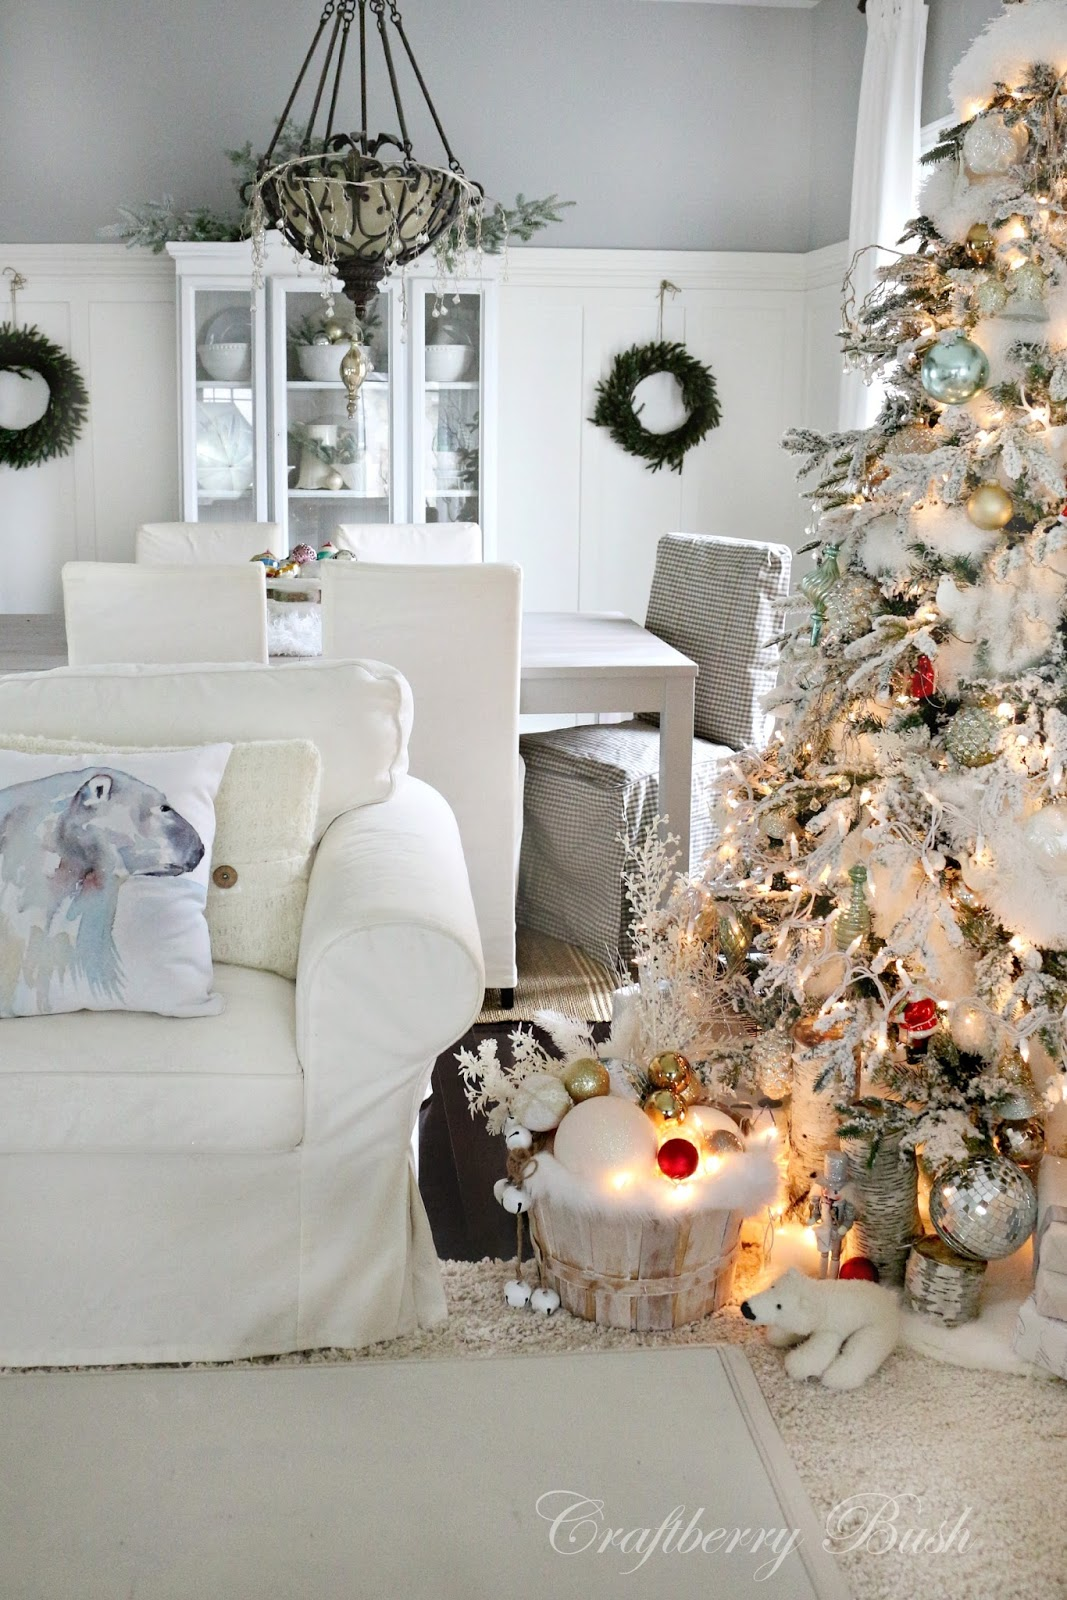 Christmas home decor ideas the 36th avenue for Christmas decorations ideas to make at home